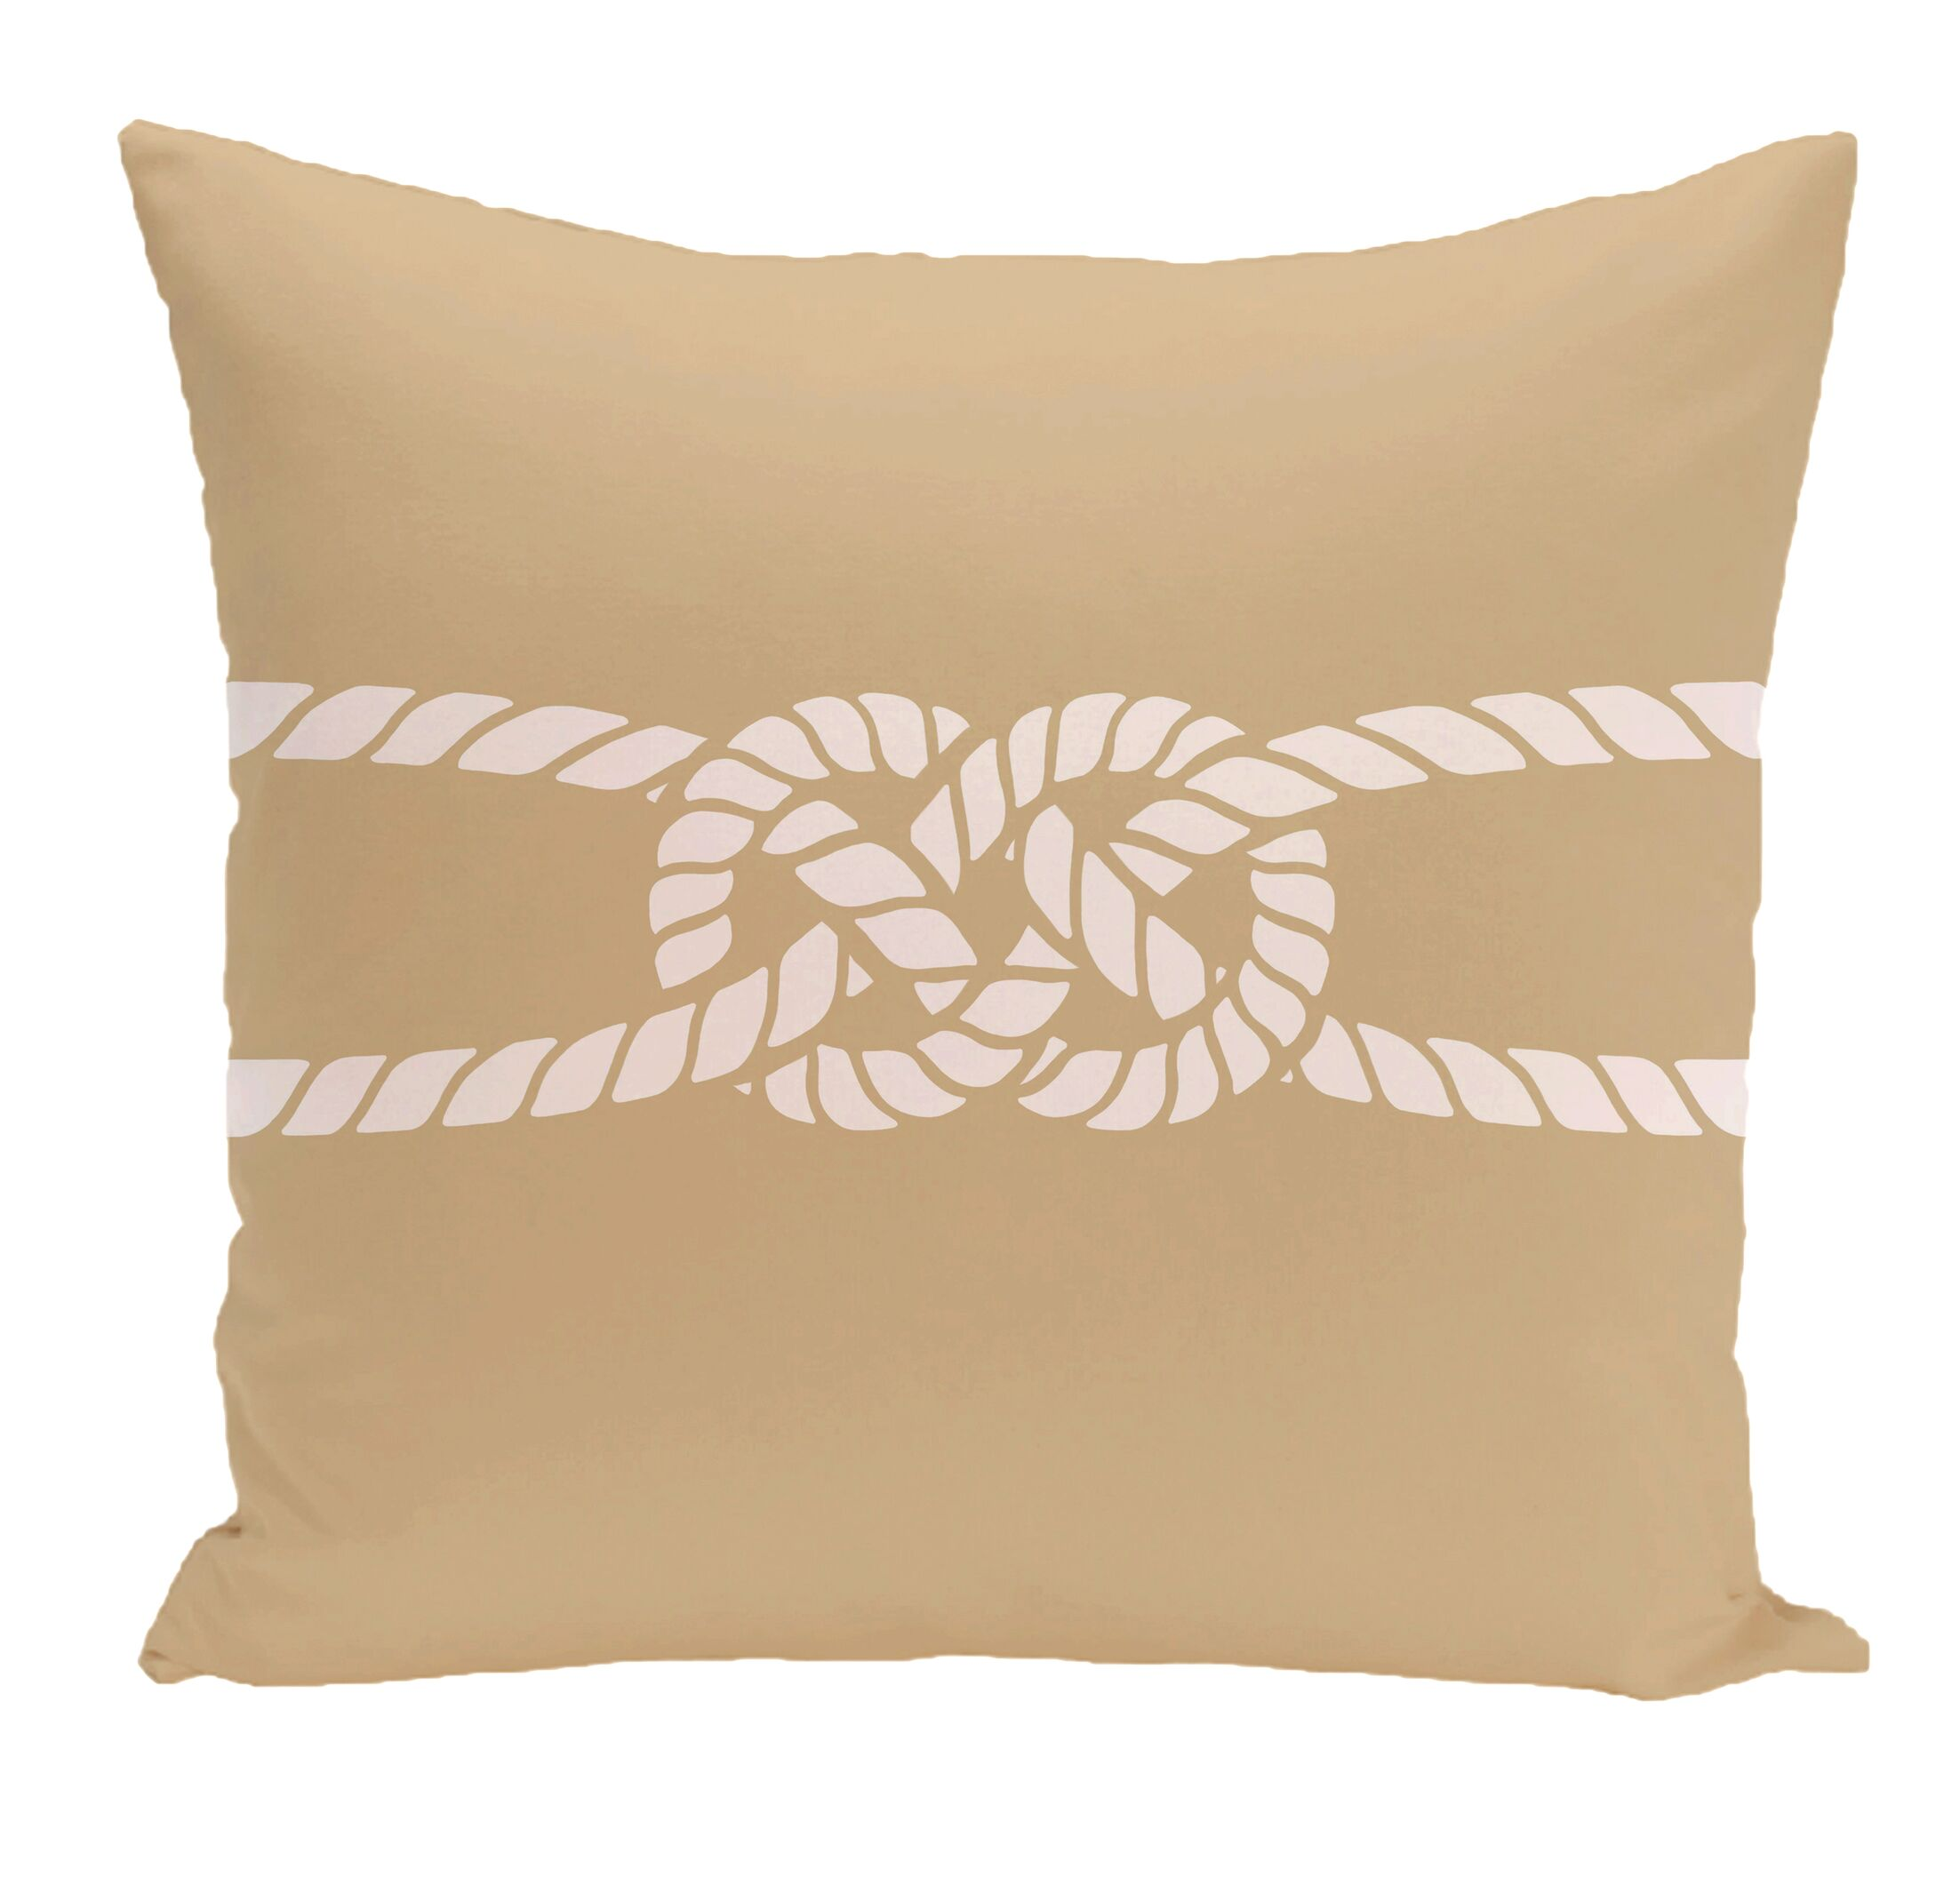 Hancock Carrick Bend Geometric Outdoor Throw Pillow Color: Beige/Taupe, Size: 16